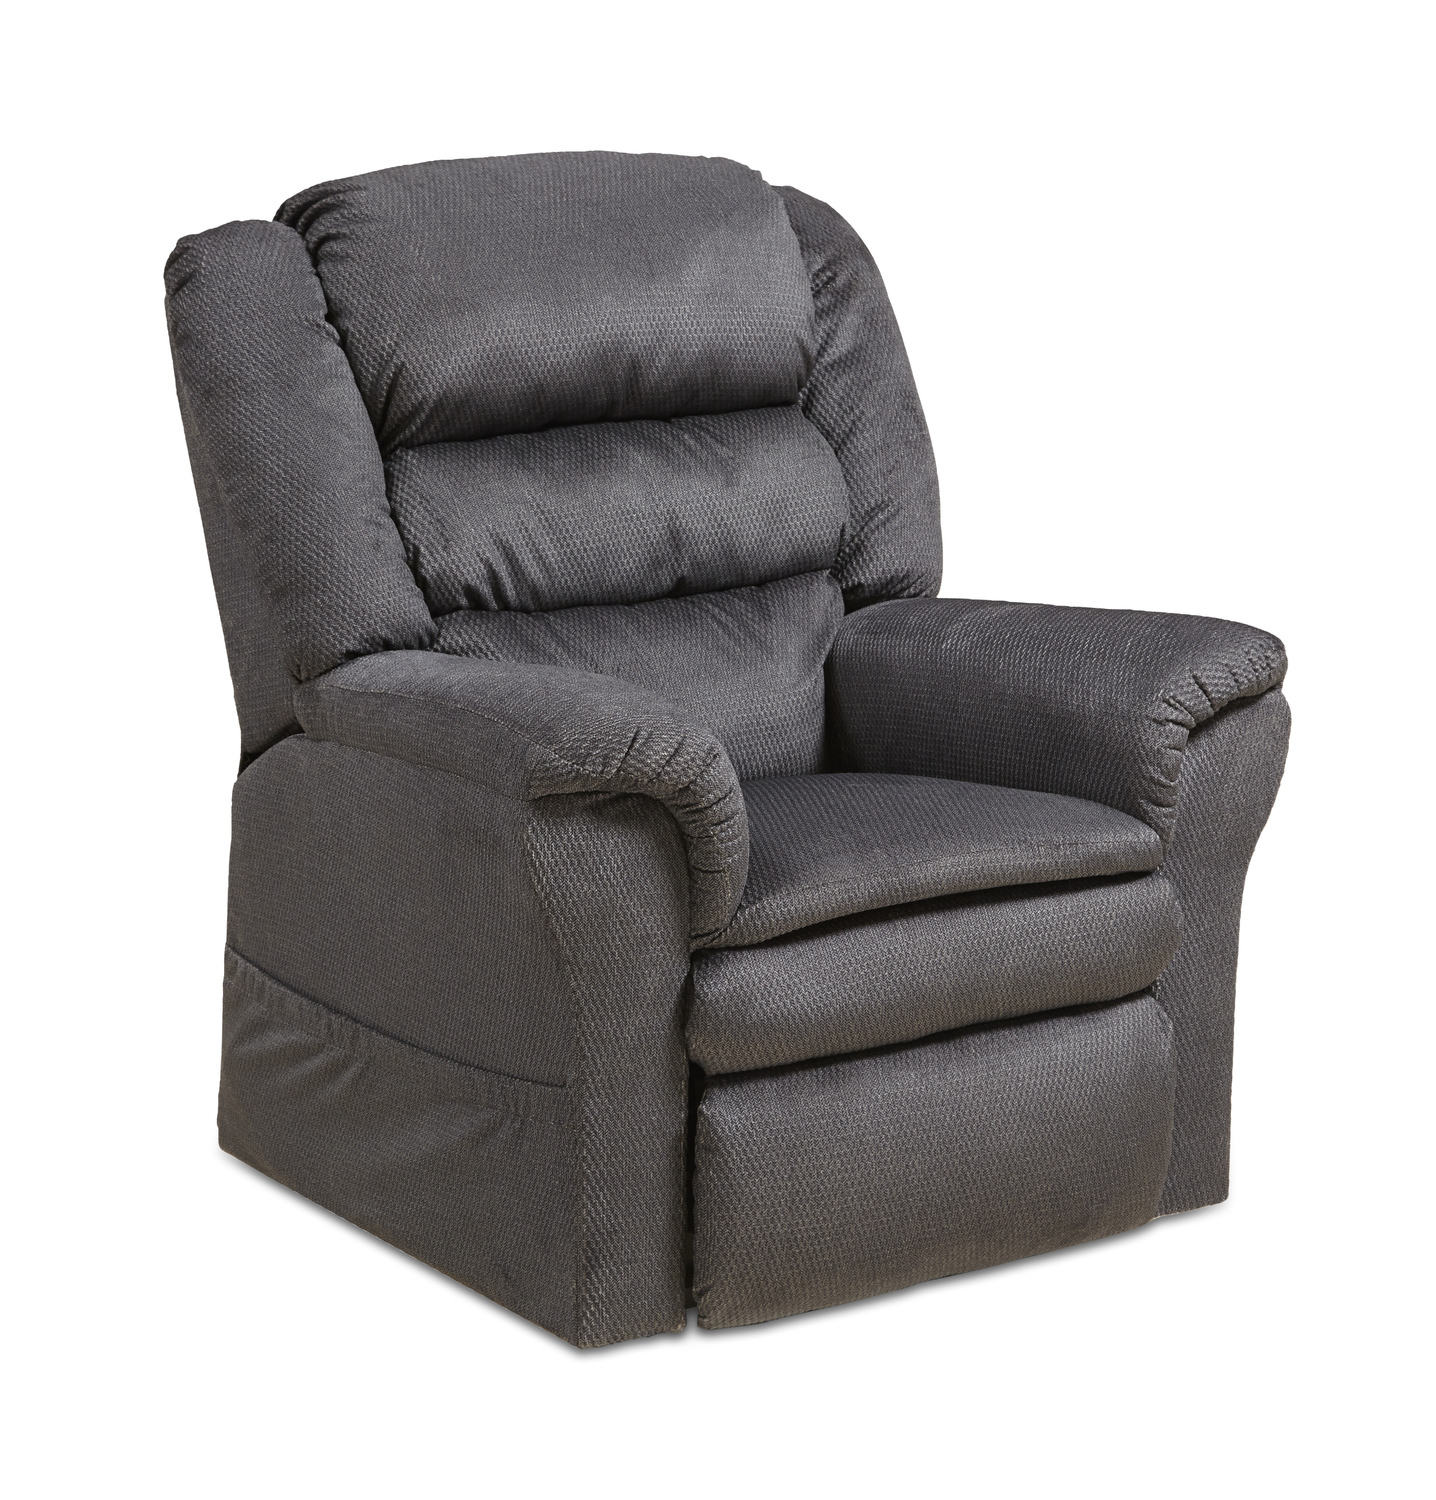 Recliners \u2013 Leather, Rocker \u0026 Swivel \u2013 HOM Furniture